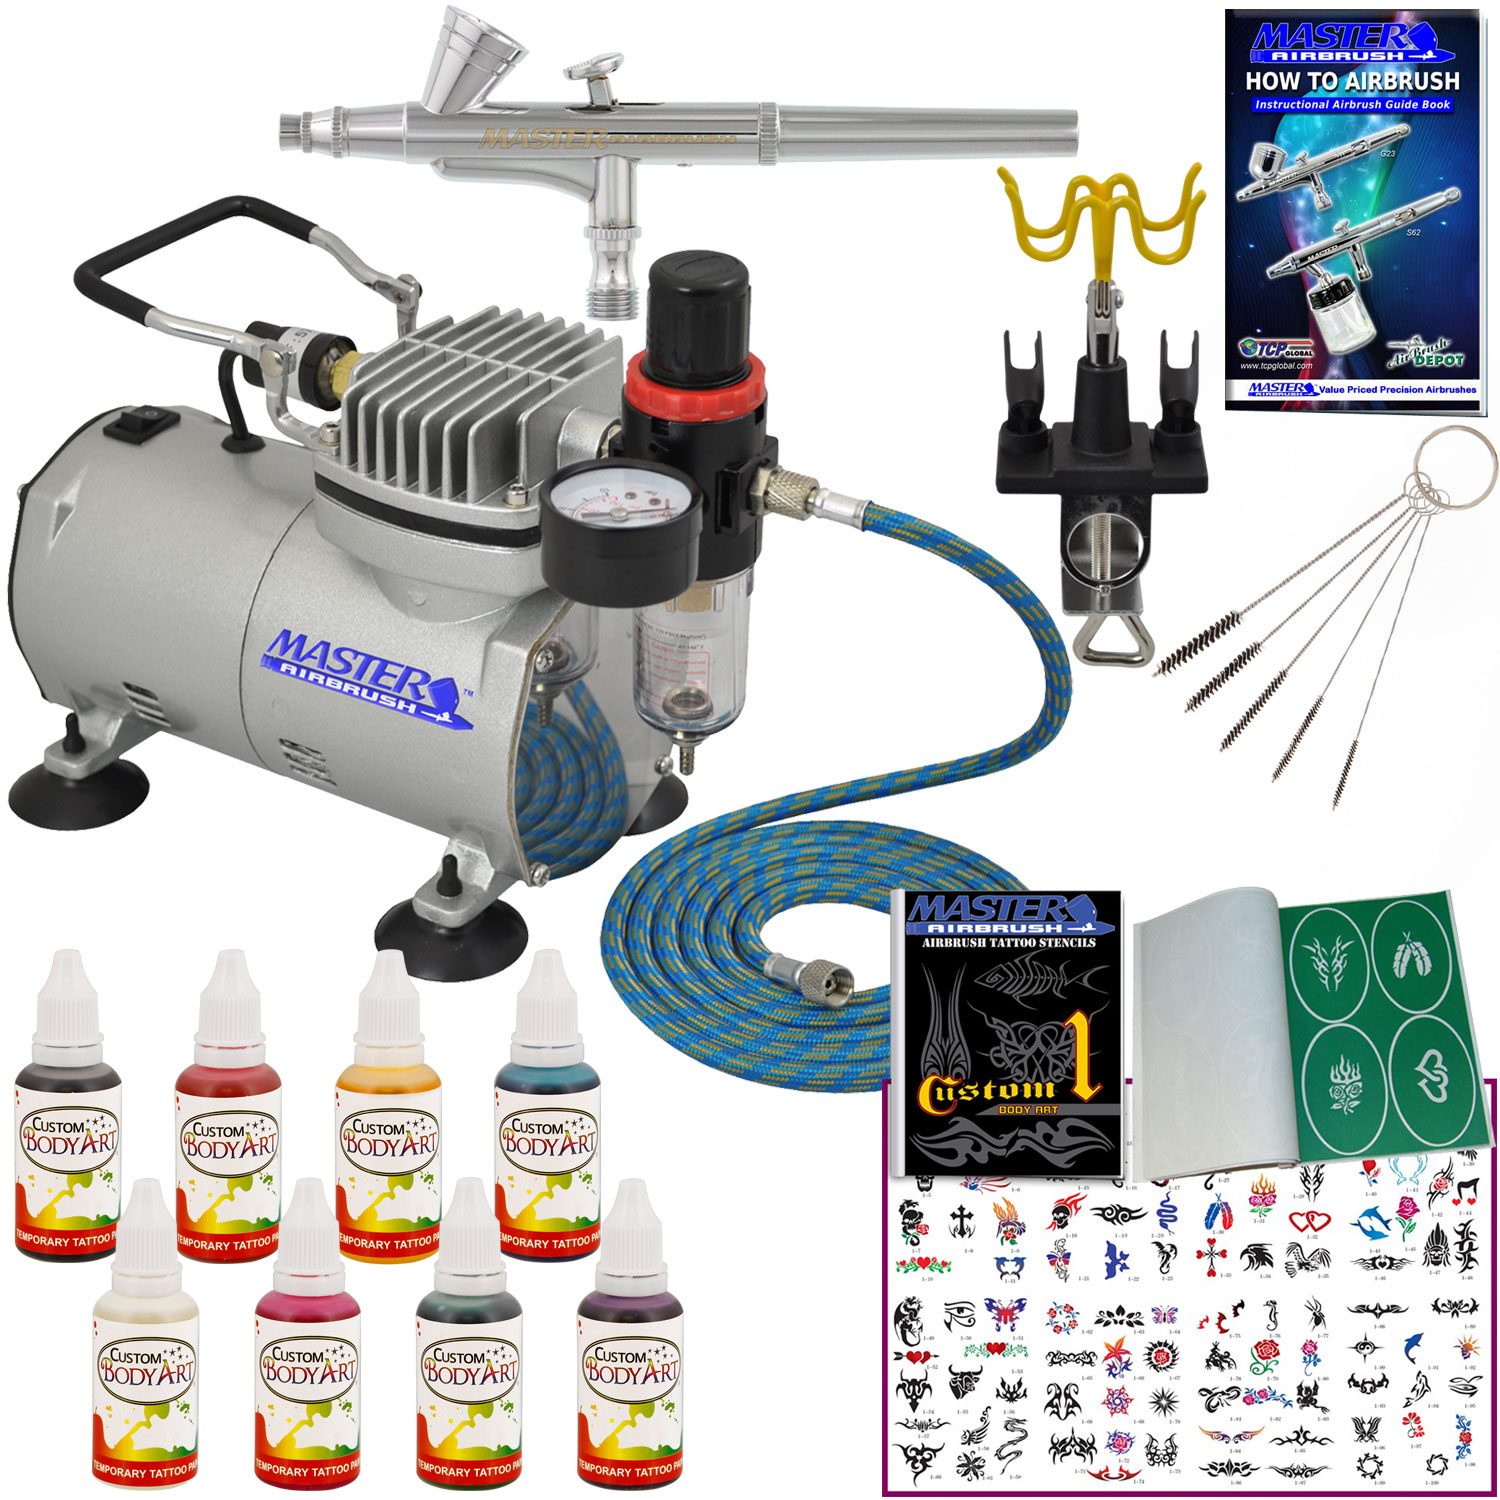 Master Pro Complete Temporary Tattoo Airbrush Kit 8 Color Ideas And Designs